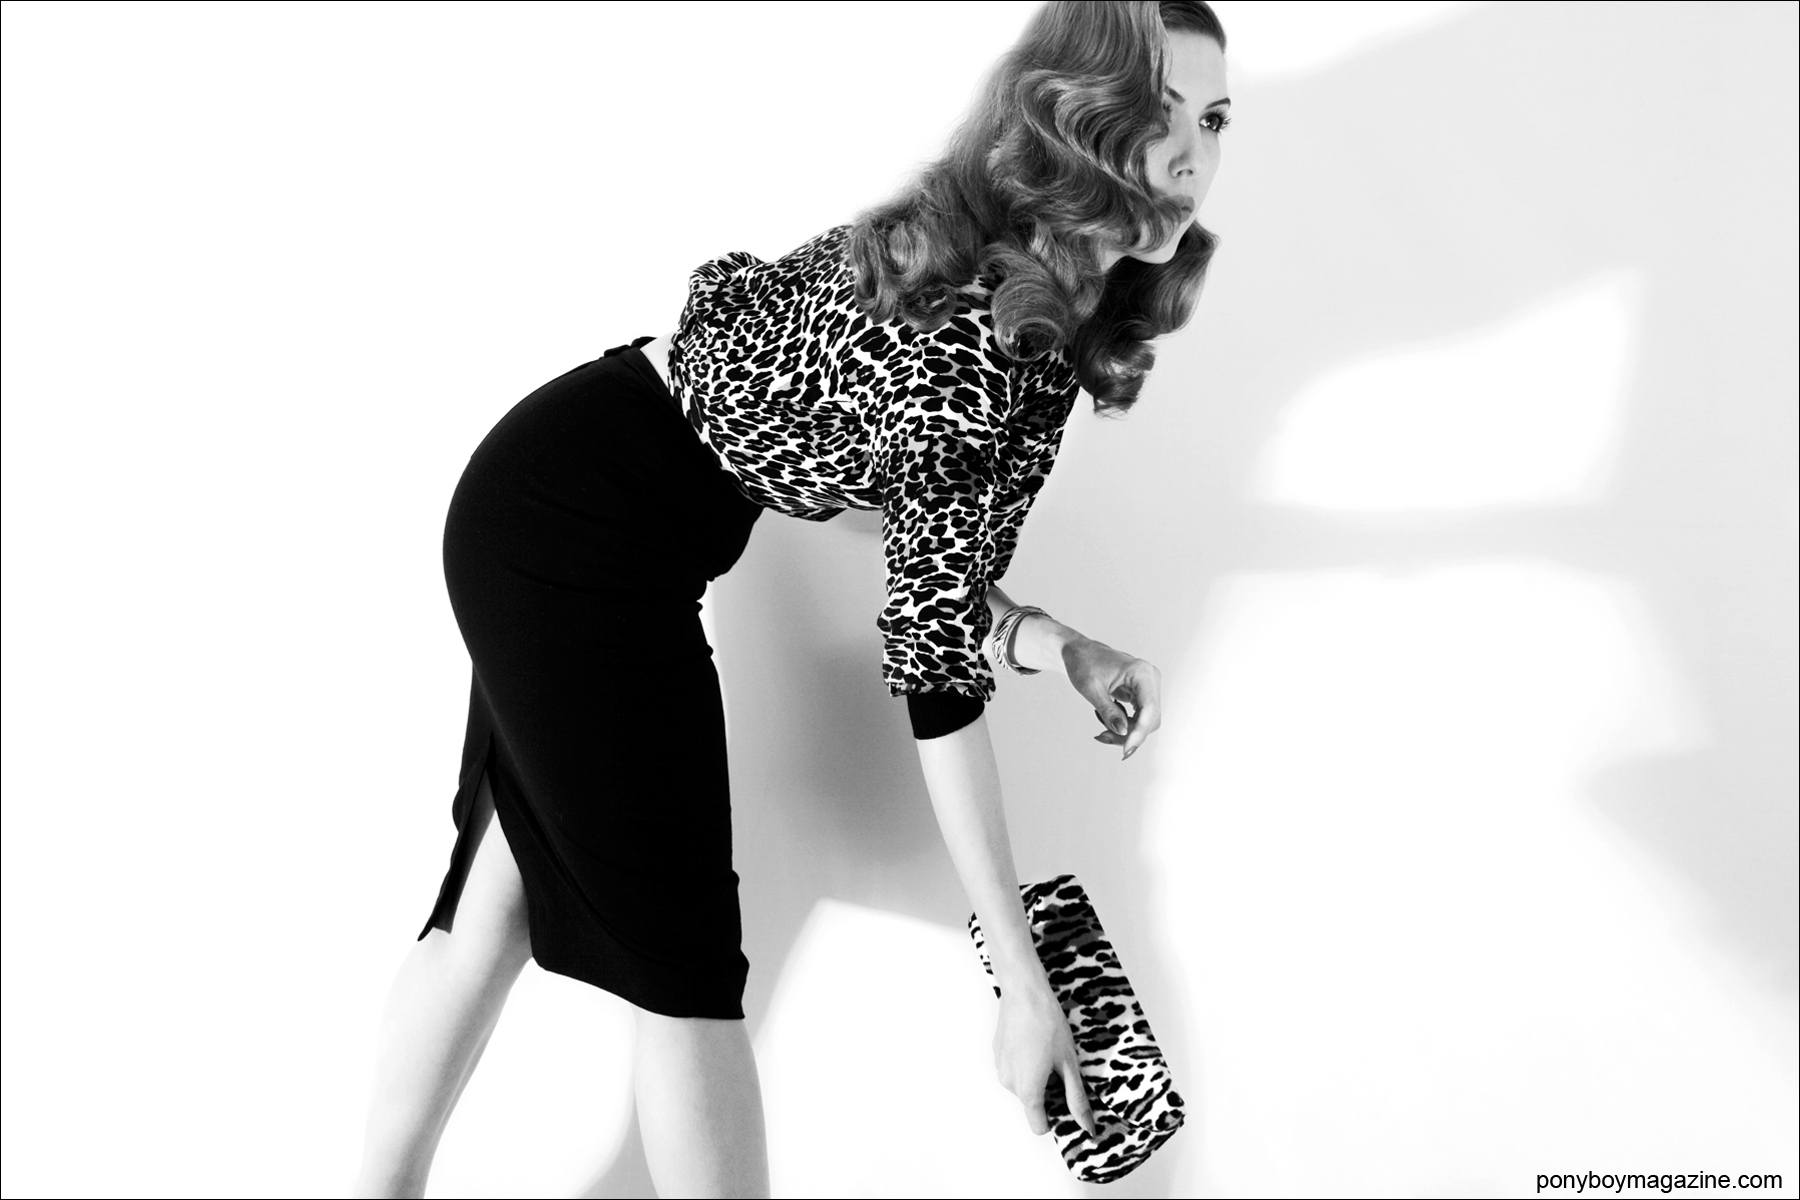 Lola Devlin wears 1950's leopard for Ponyboy Magazine, photographed by Alexander Thompson.